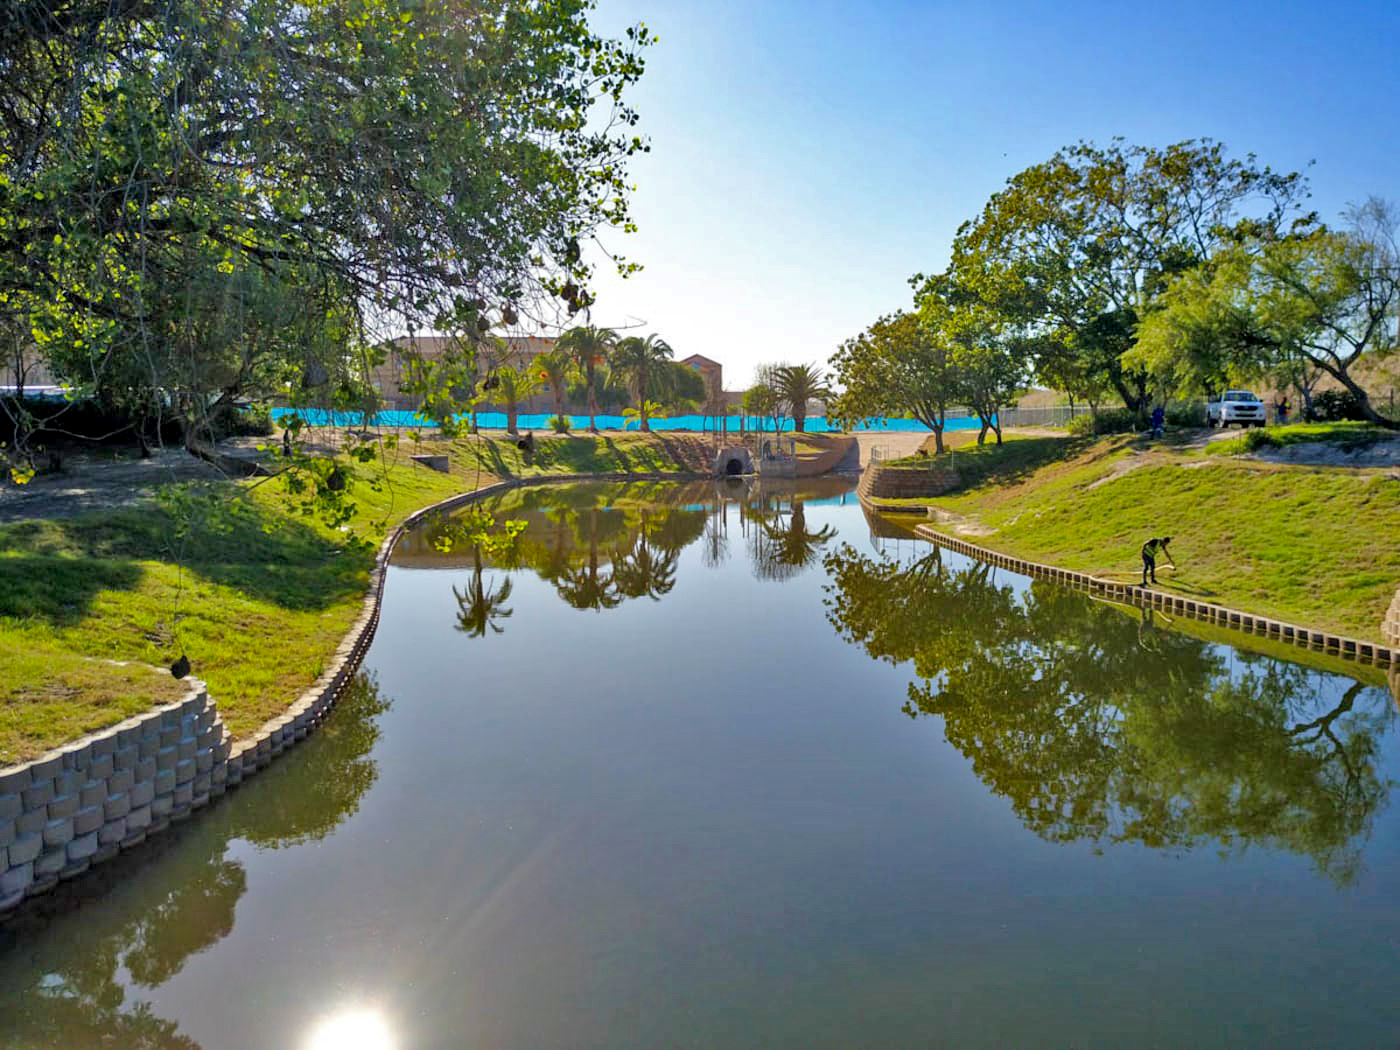 Visually the pond now showcases a lush, green, and peaceful setting that students and animals can enjoy alike.